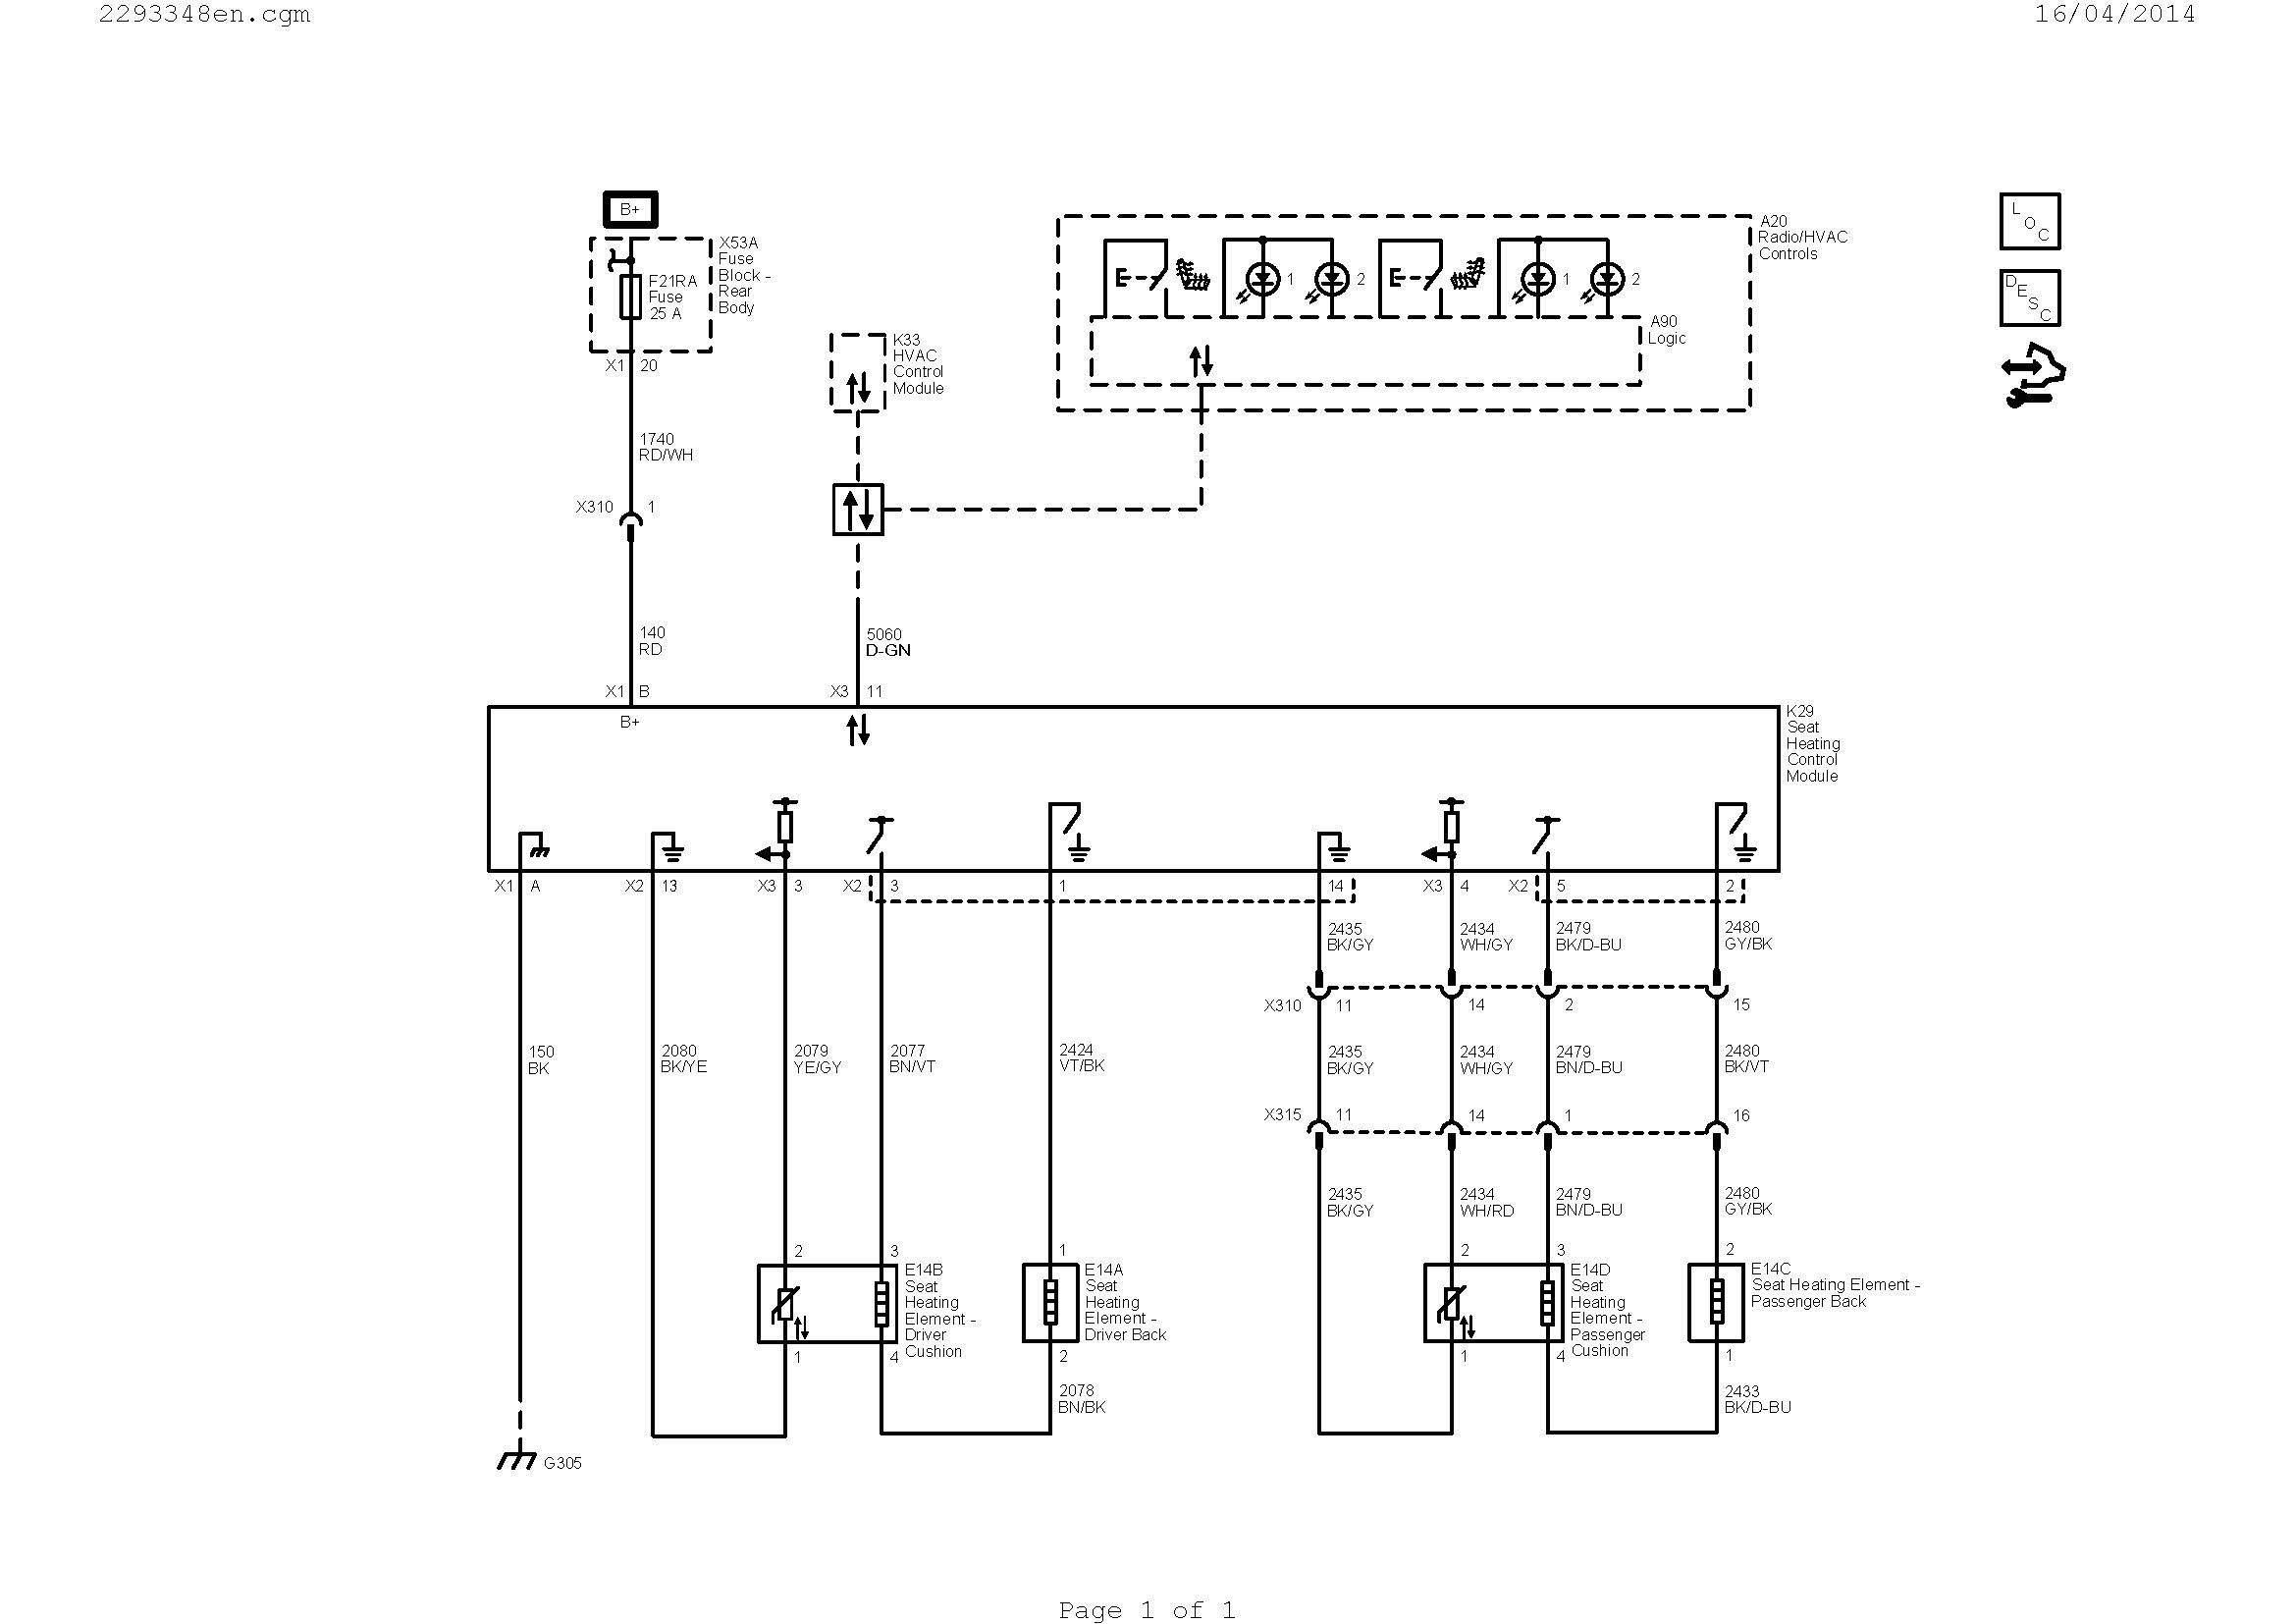 phone line wiring diagram Collection-7 wire thermostat wiring diagram Download Wiring A Ac Thermostat Diagram New Wiring Diagram Ac 14-o